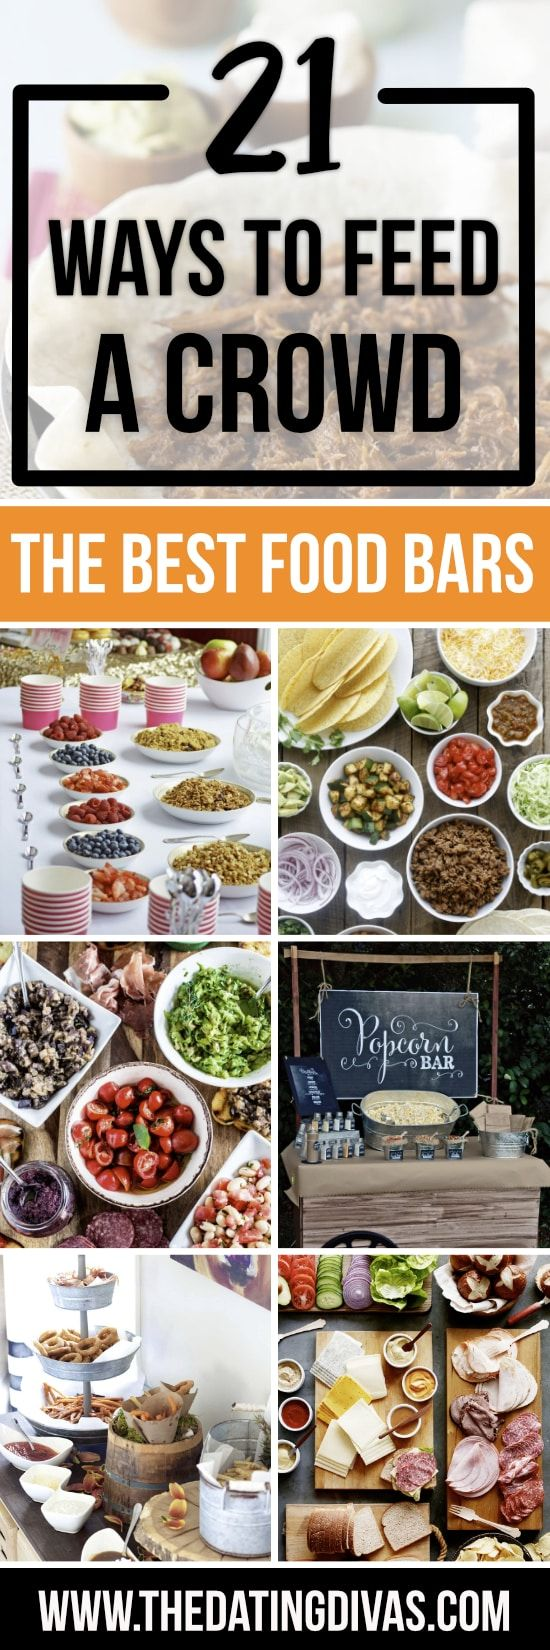 easy ways to feed a crowd from dinner for a crowd pinterest food bars bar and yogurt bar. Black Bedroom Furniture Sets. Home Design Ideas